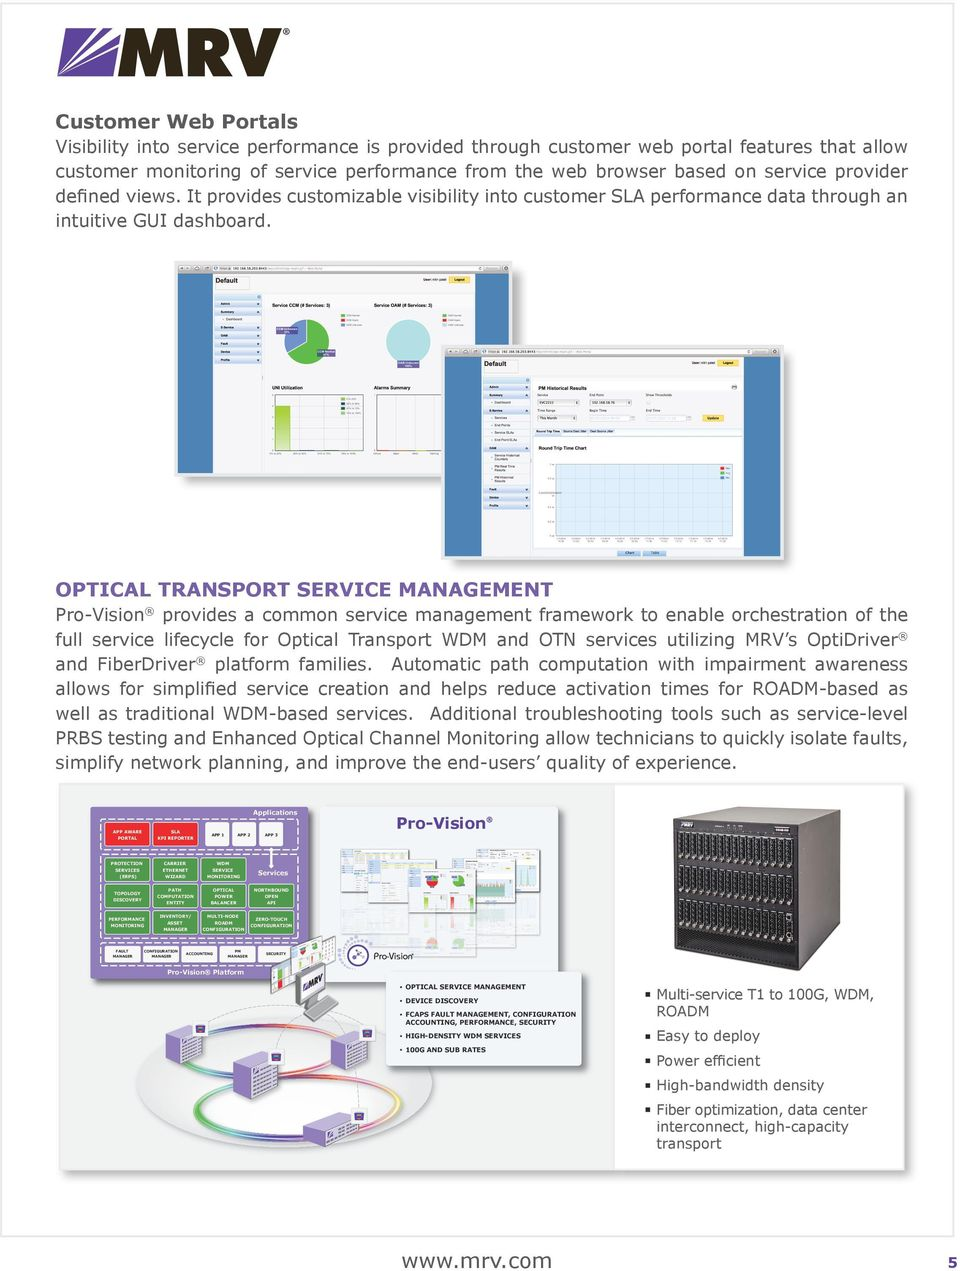 OPTICAL TRANSPORT SERVICE MANAGEMENT Pro-Vision provides a common service management framework to enable orchestration of the full service lifecycle for Optical Transport WDM and OTN services